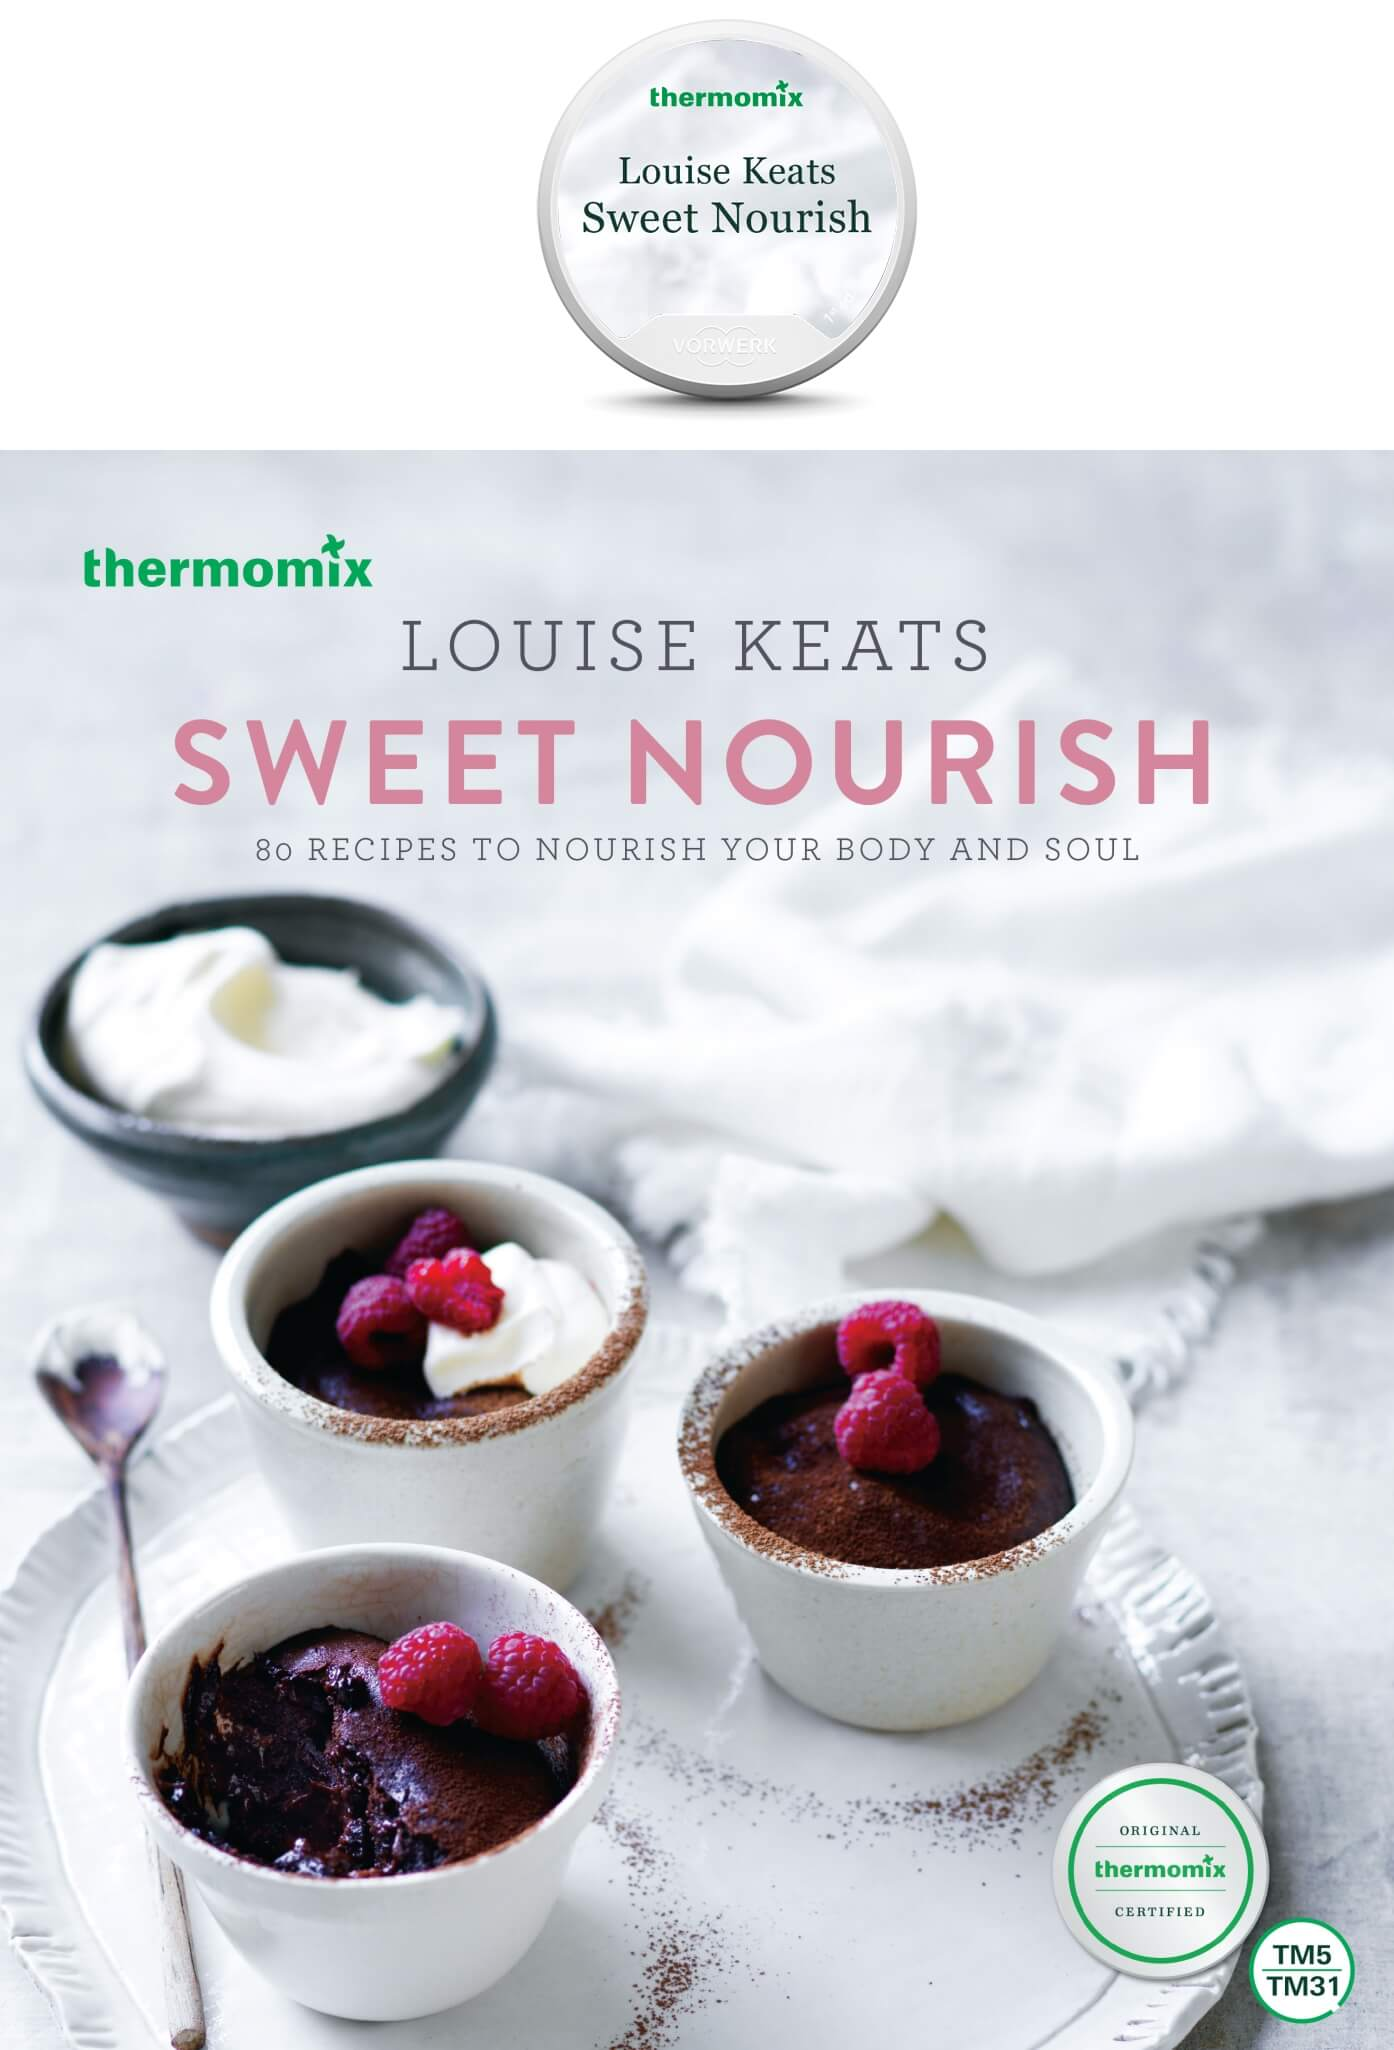 Sweet nourish cookbook and chip pack